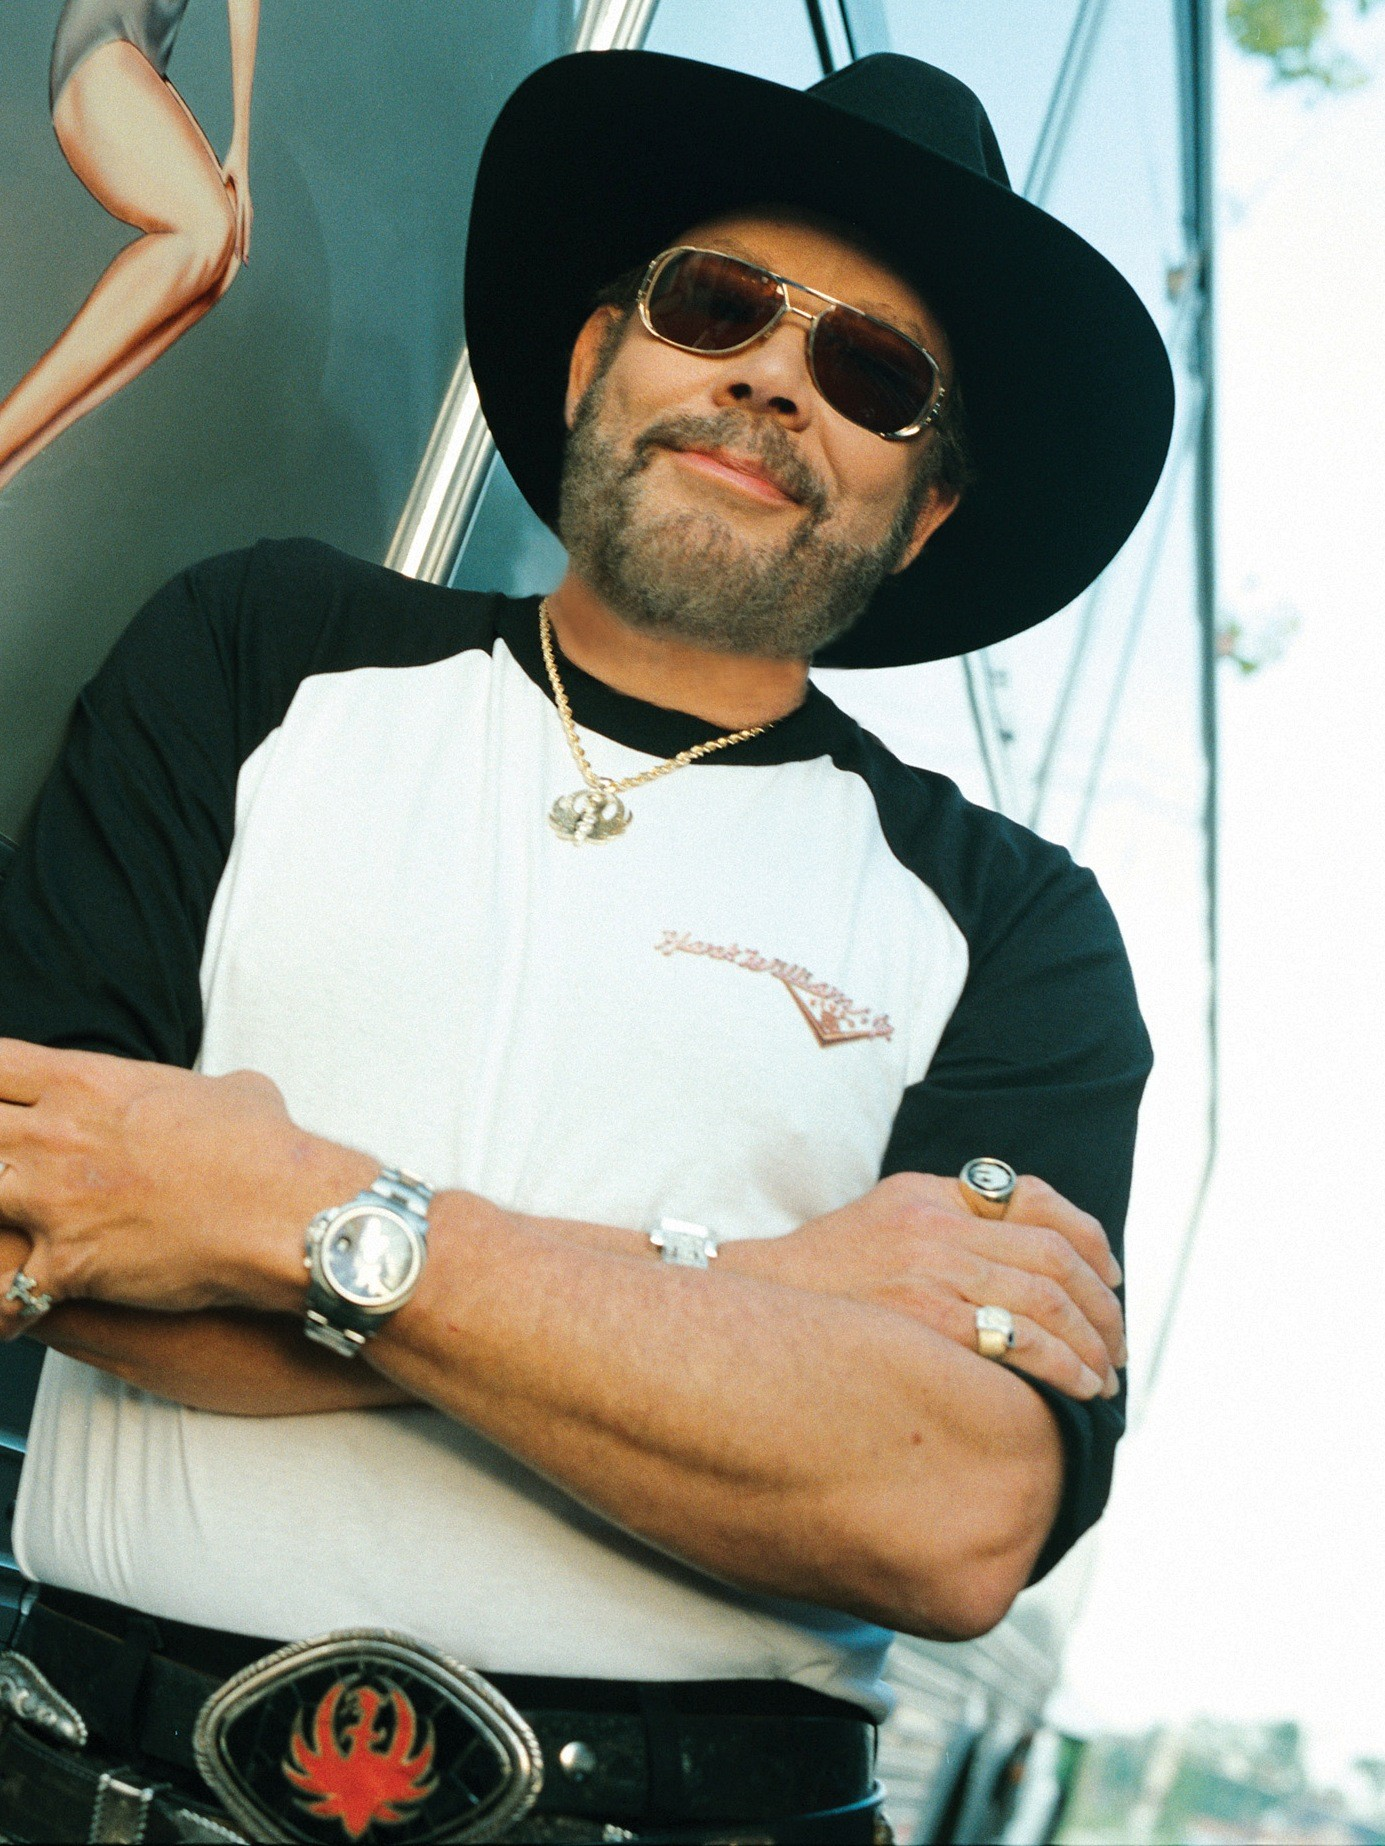 Hank Williams Jr. Hank Williams Jr. Habits Old And New